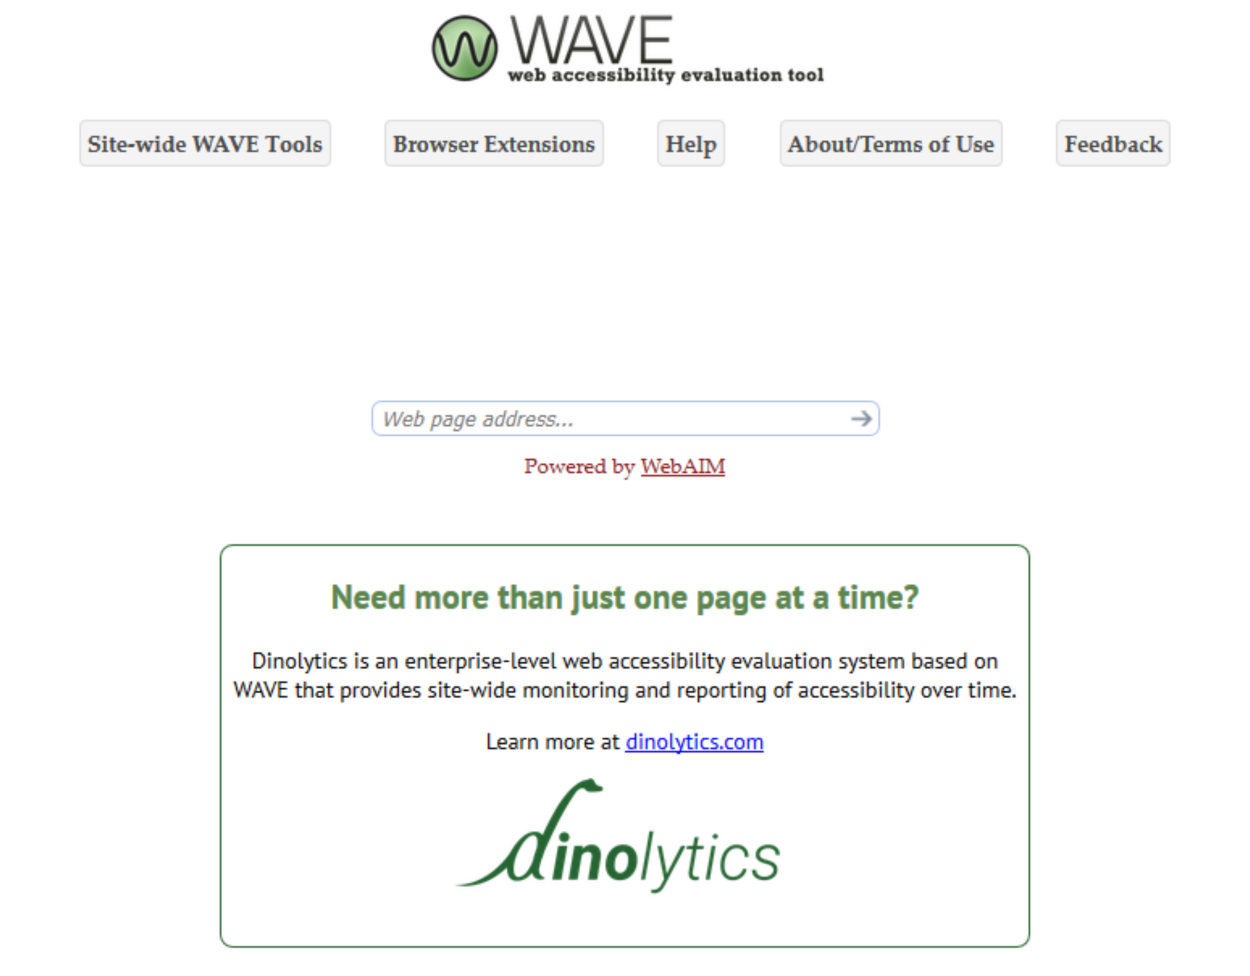 WebAIM WAVE Accessibility Evaluation Tool - Homepage